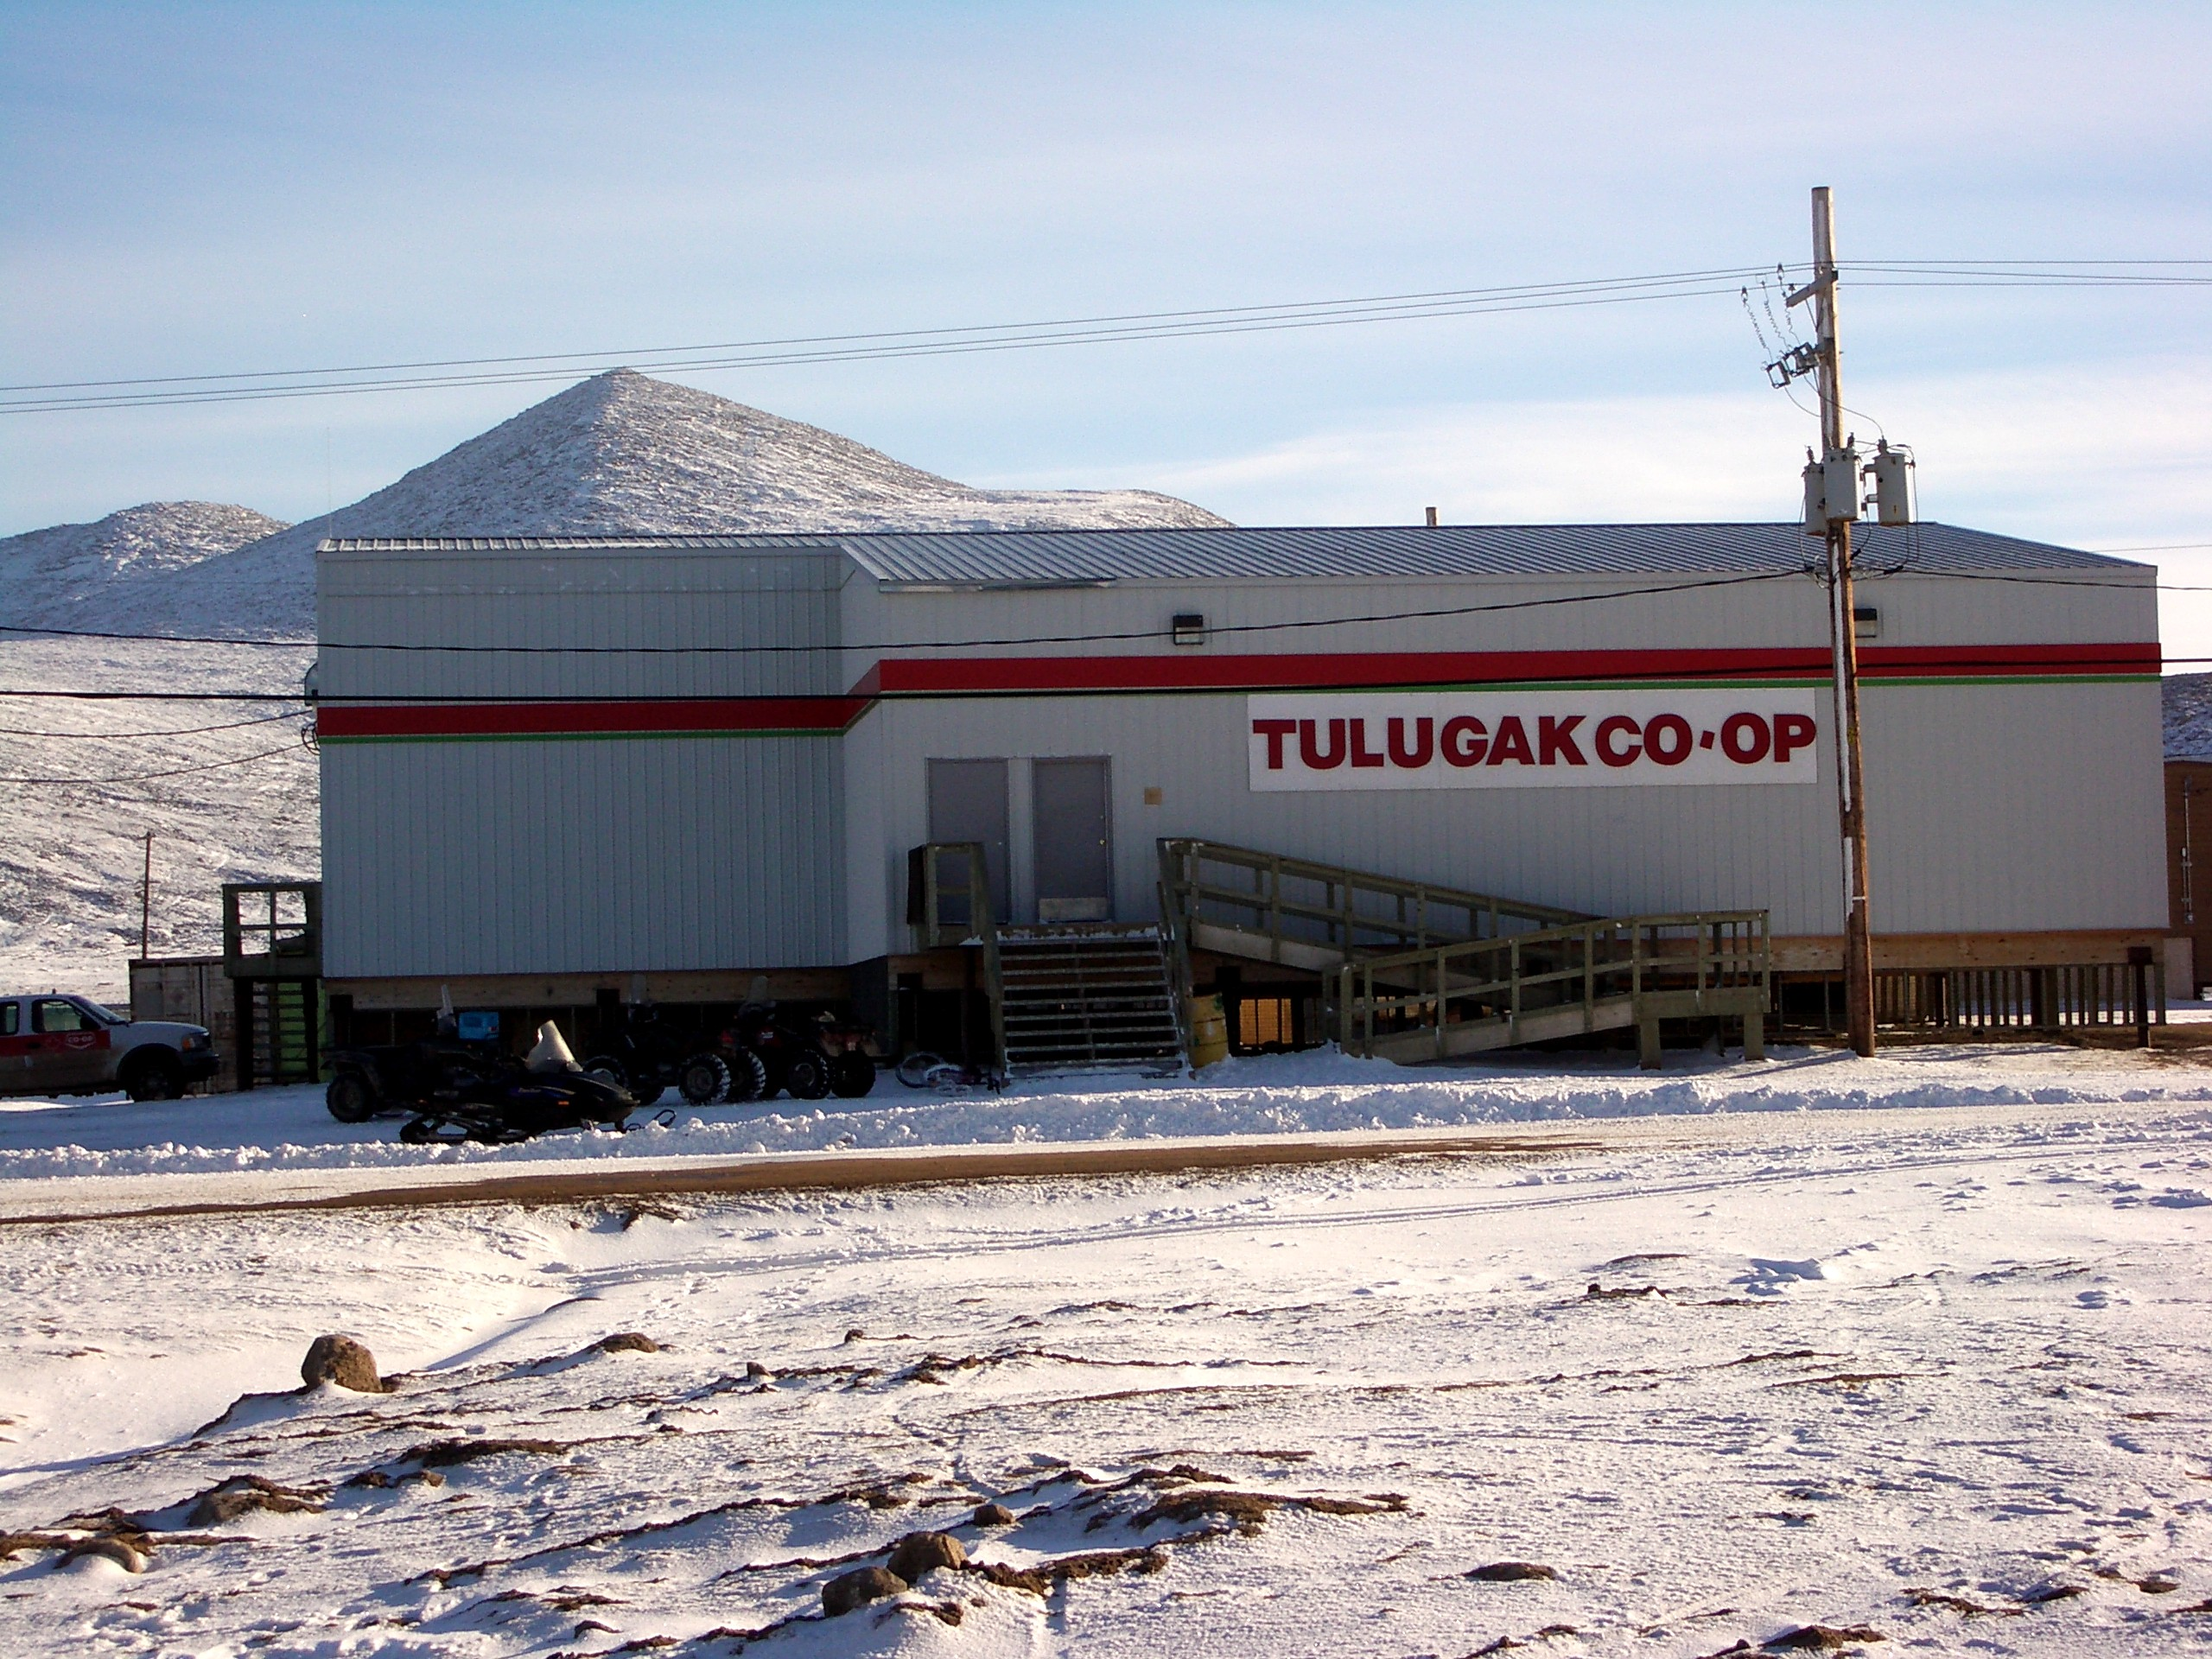 The Tulugak Hotel